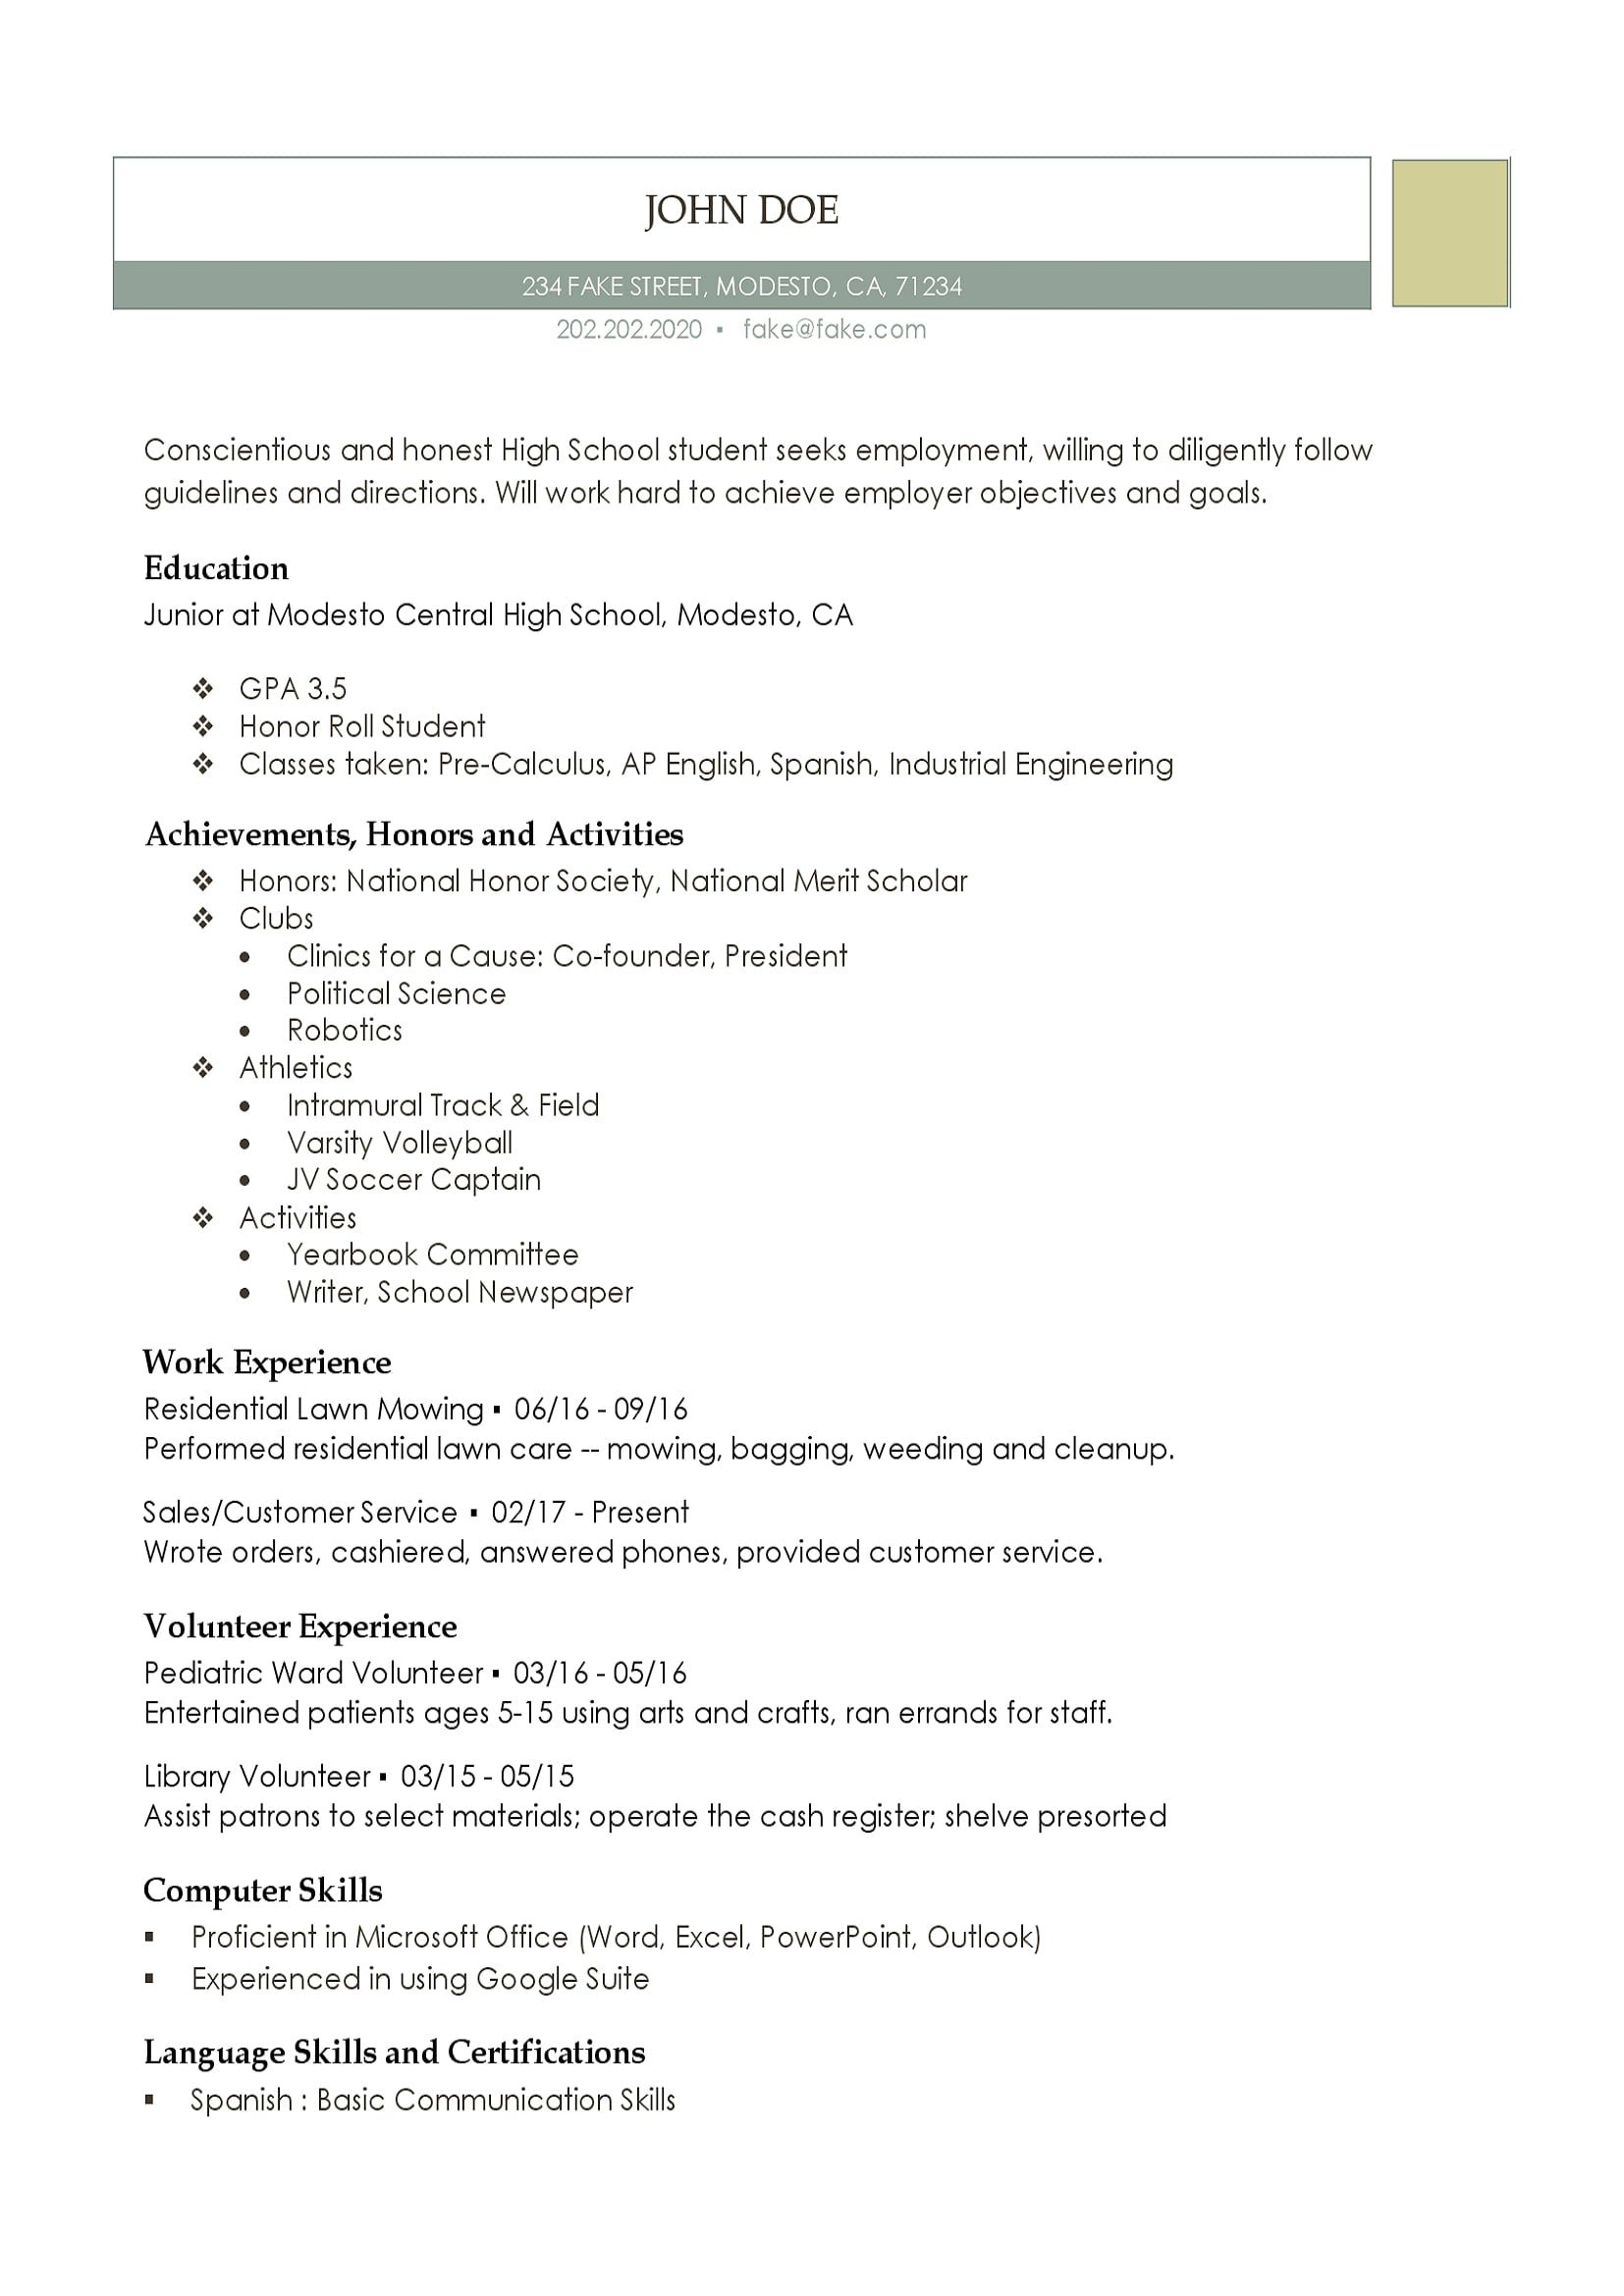 002 Incredible Student Resume Template Word Image  Download College Microsoft FreeFull